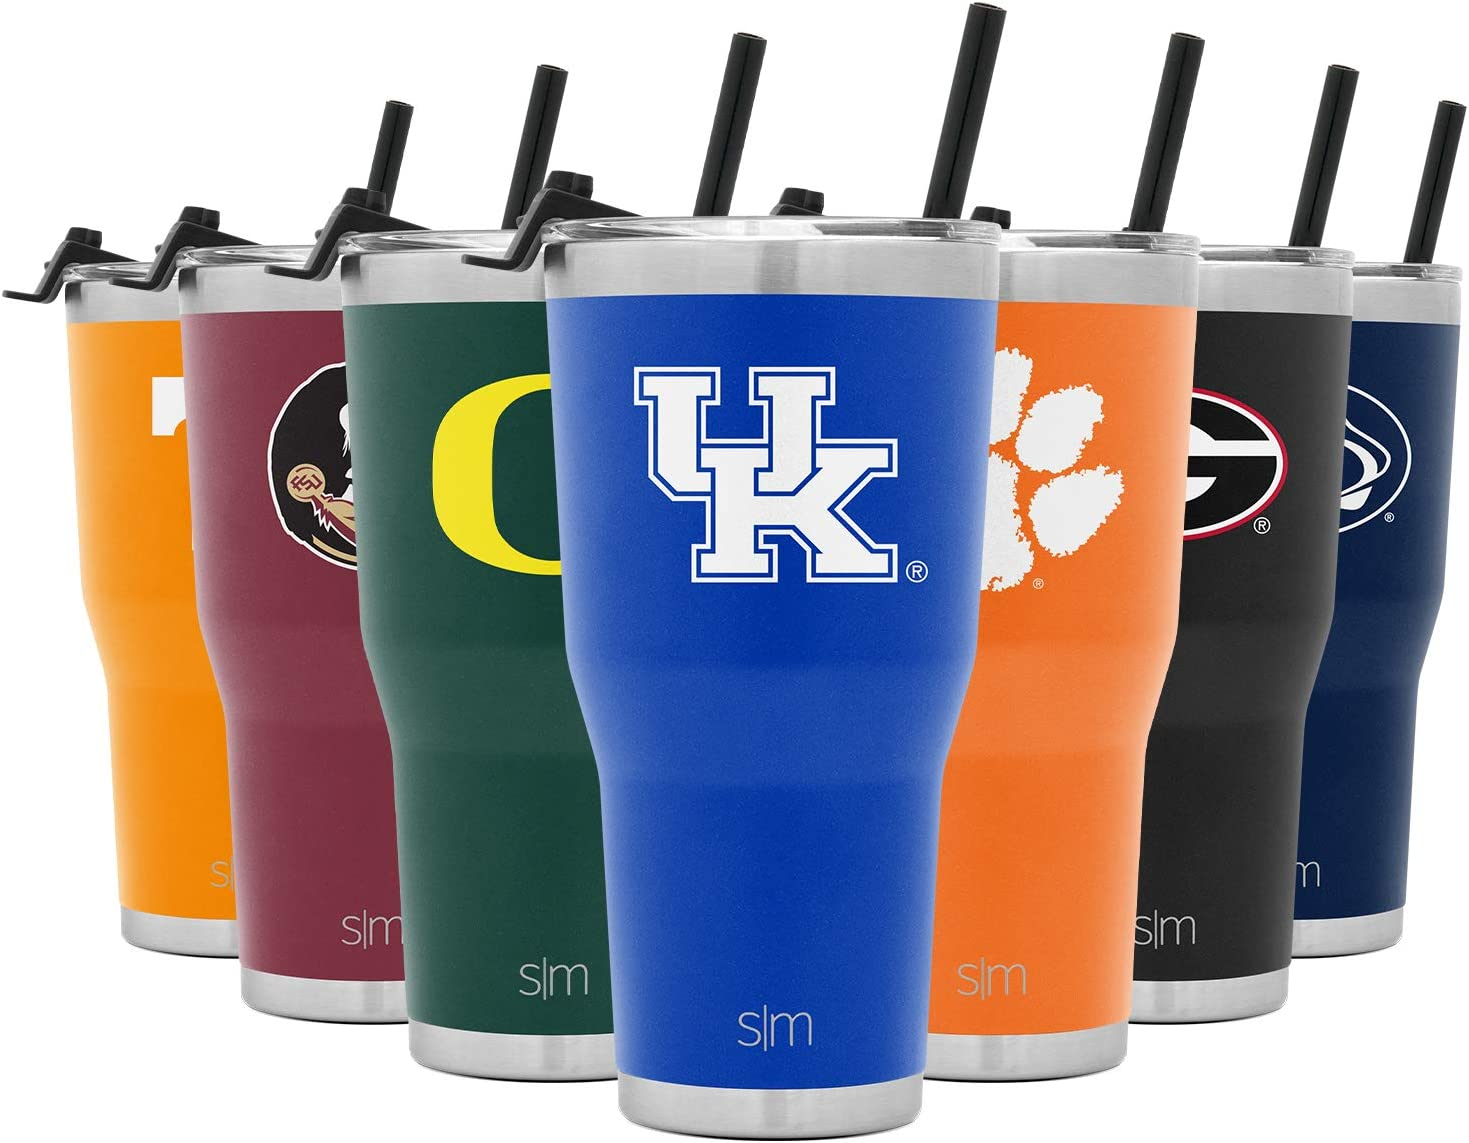 Simple Modern 30oz Cruiser Tumbler with Clear Flip Lid - Coffee Travel Tumbler Stainless Steel - Gifts for Men Women Dads: Kentucky Wildcats (NCAA Drinkware)